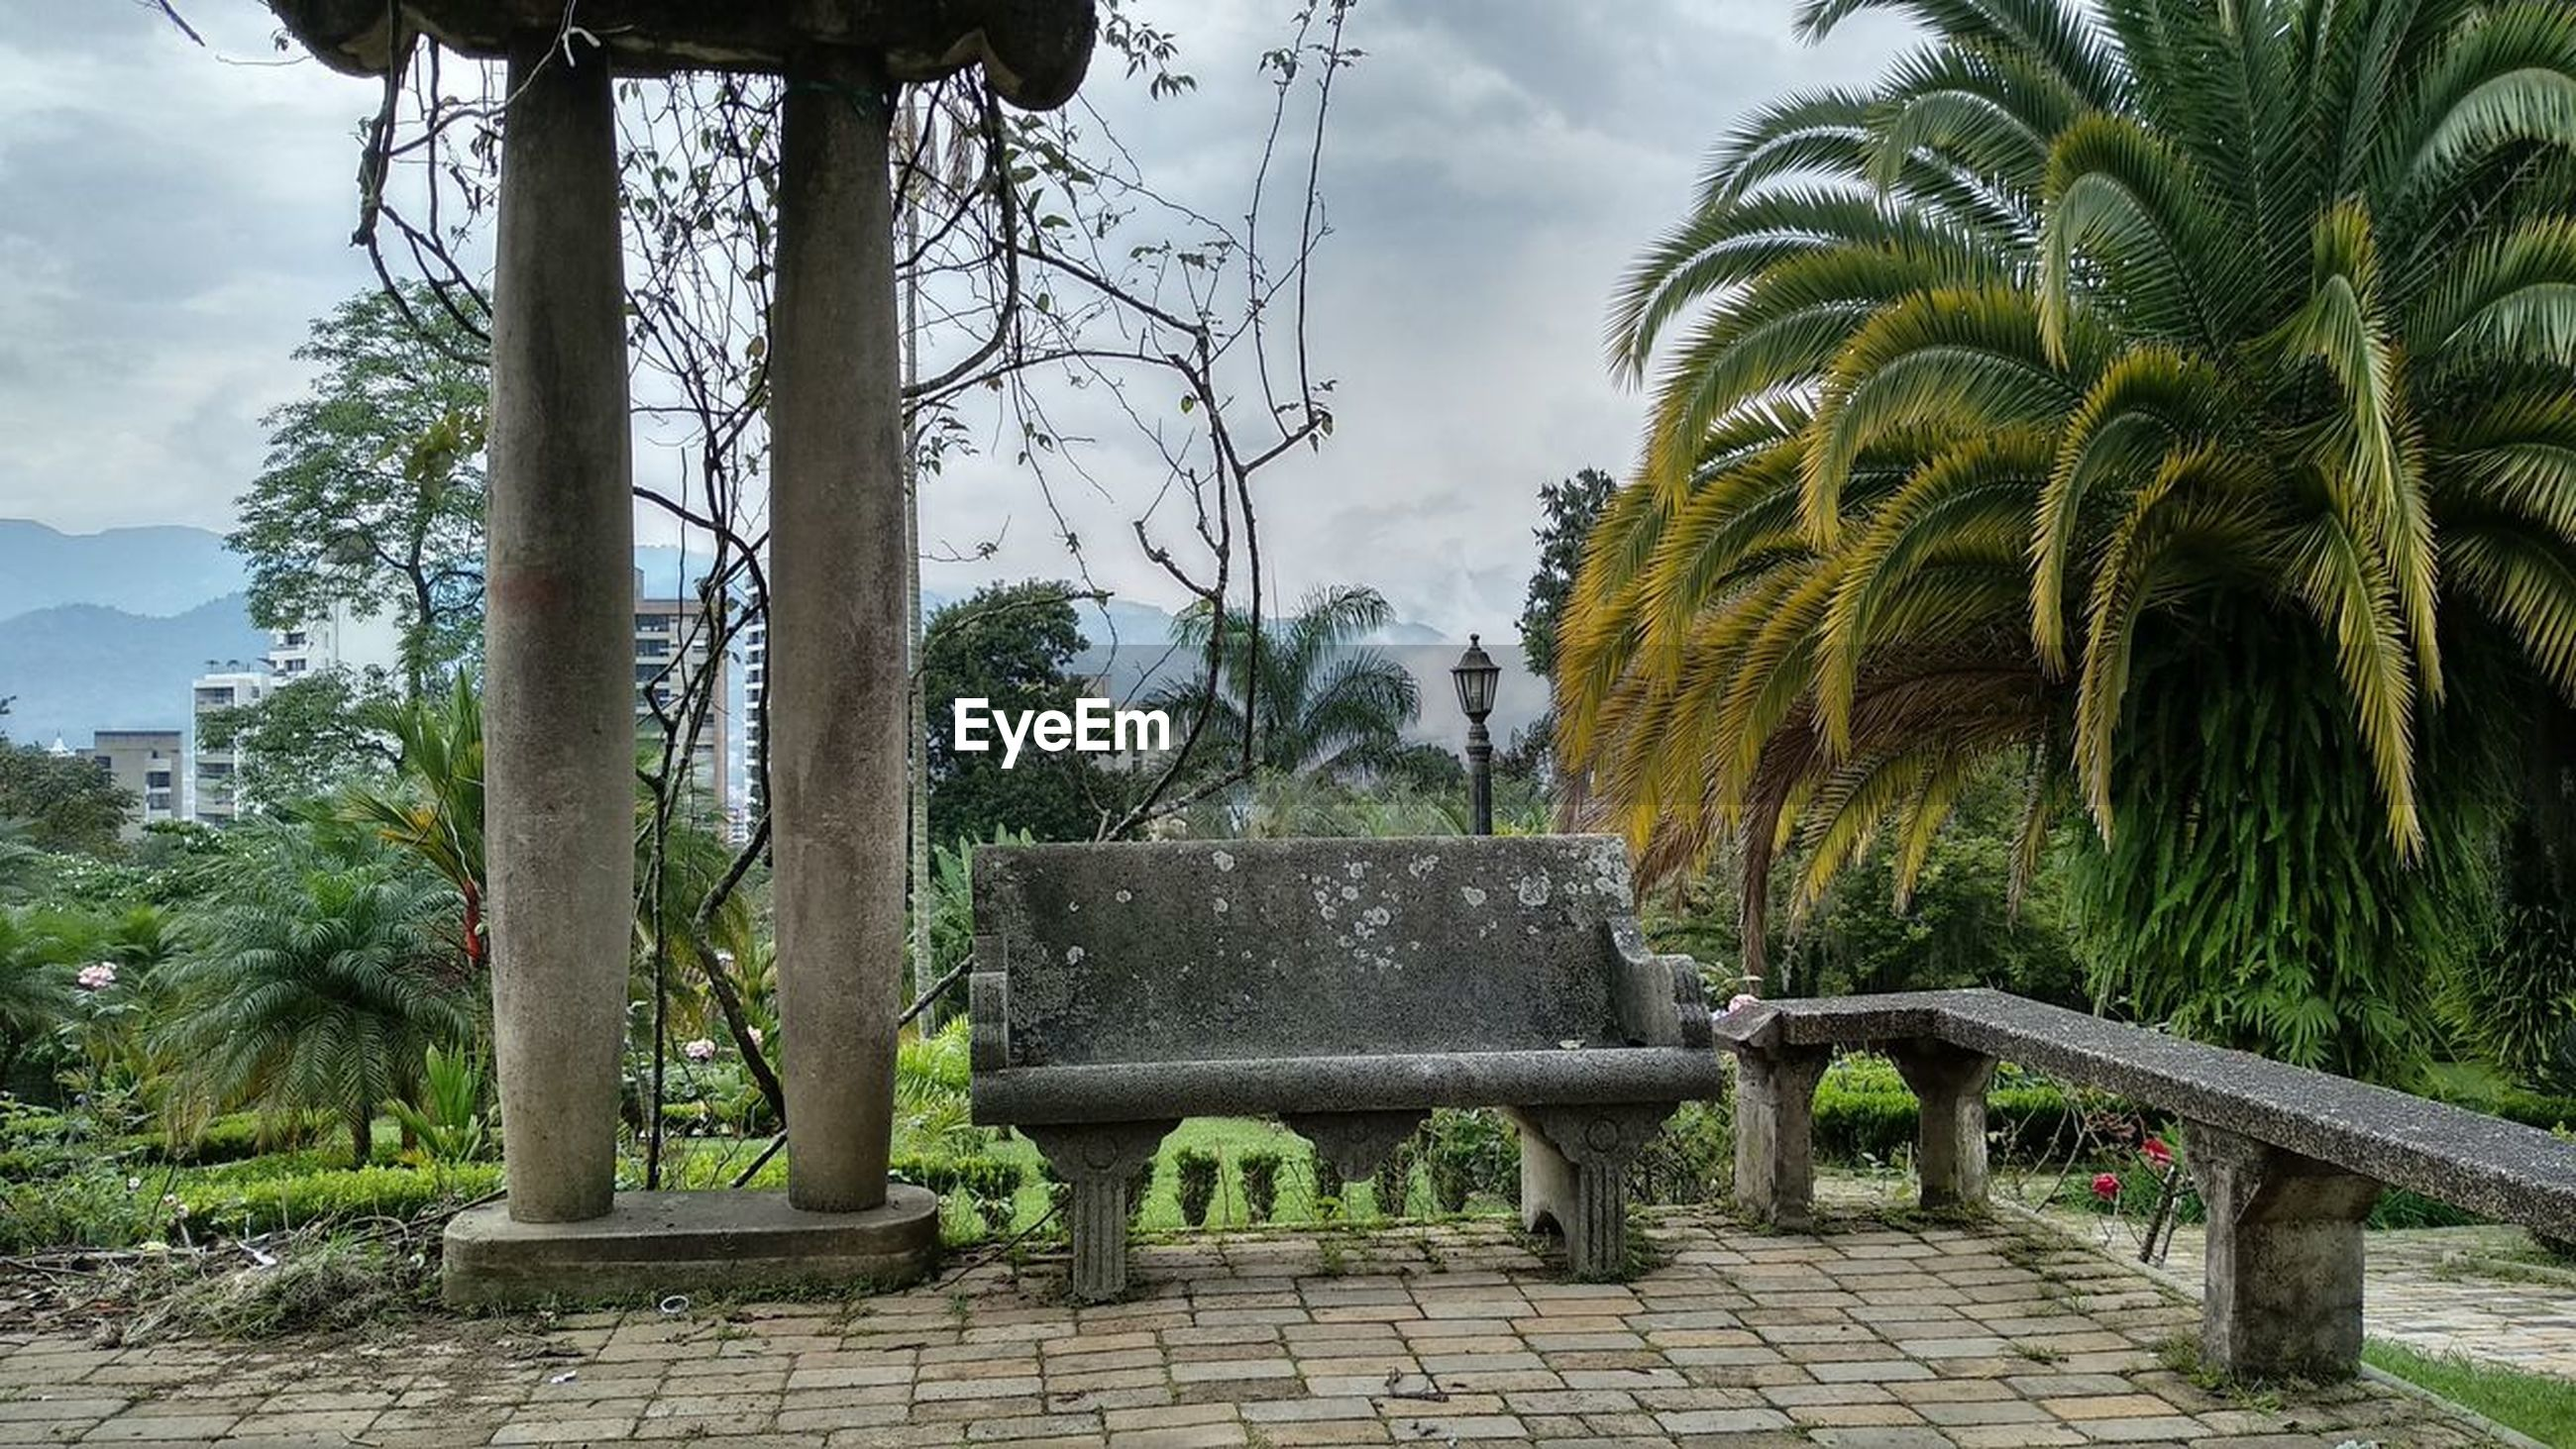 tree, plant, nature, growth, sky, palm tree, tree trunk, tropical climate, trunk, day, architecture, beauty in nature, park, built structure, no people, green color, tranquility, park - man made space, cloud - sky, outdoors, park bench